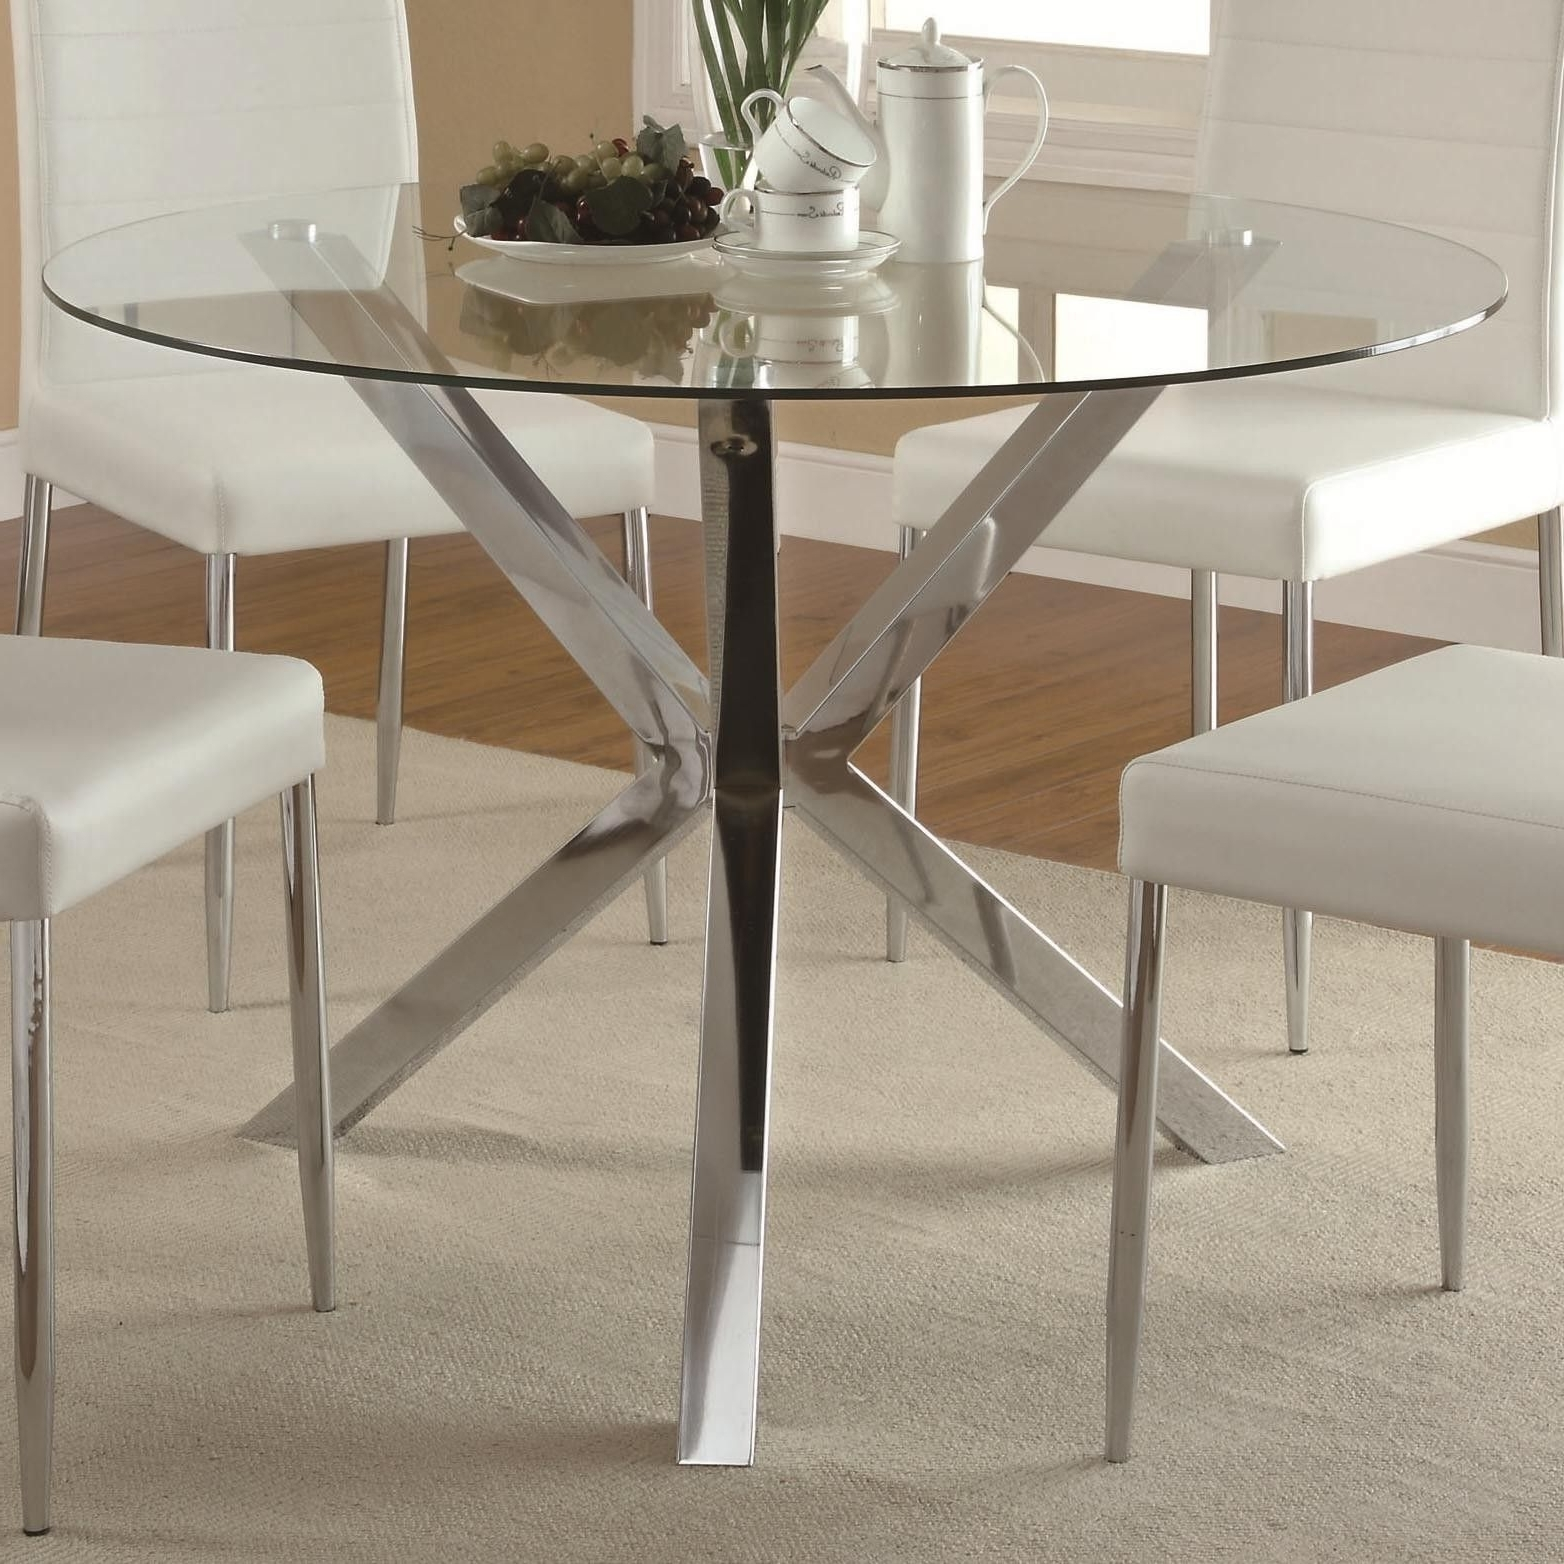 Recent Vance Glass Top Dining Table With Unique Chrome Base 120760 Qlx1 With Regard To Lassen 7 Piece Extension Rectangle Dining Sets (View 10 of 25)